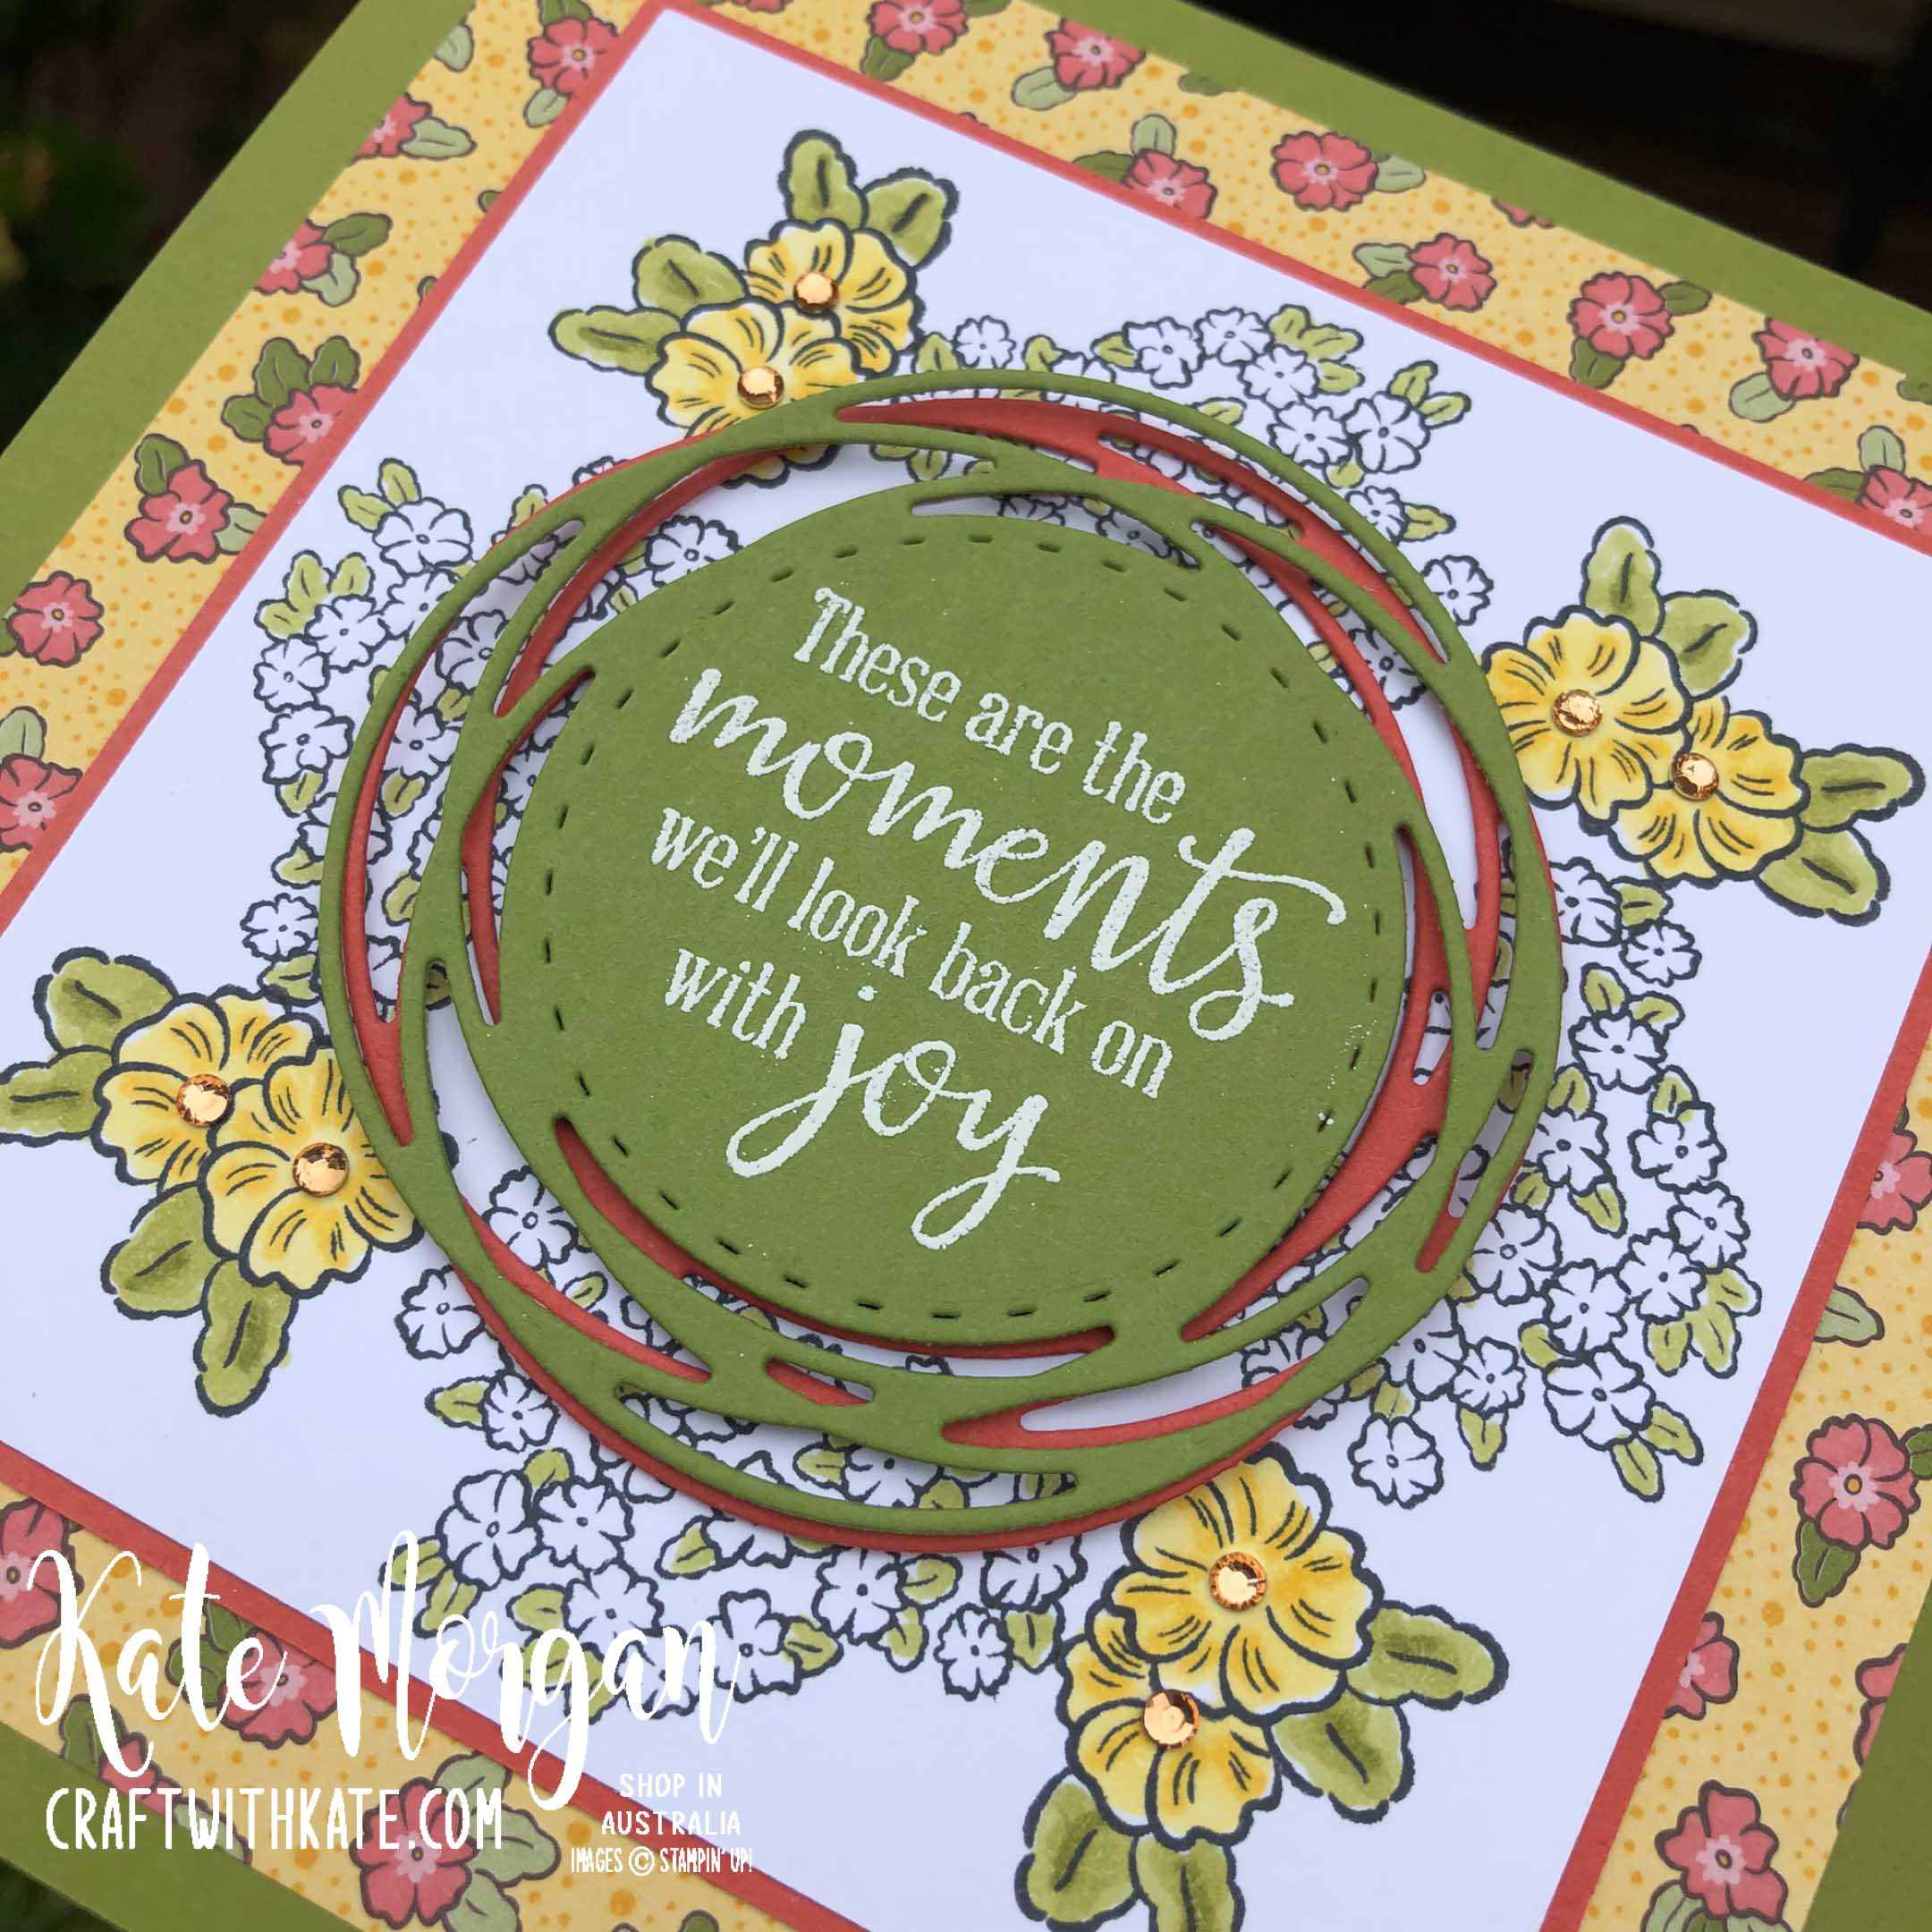 Ornate Style Stamp In the Round design by Kate Morgan Stampin Up Australia 2020.